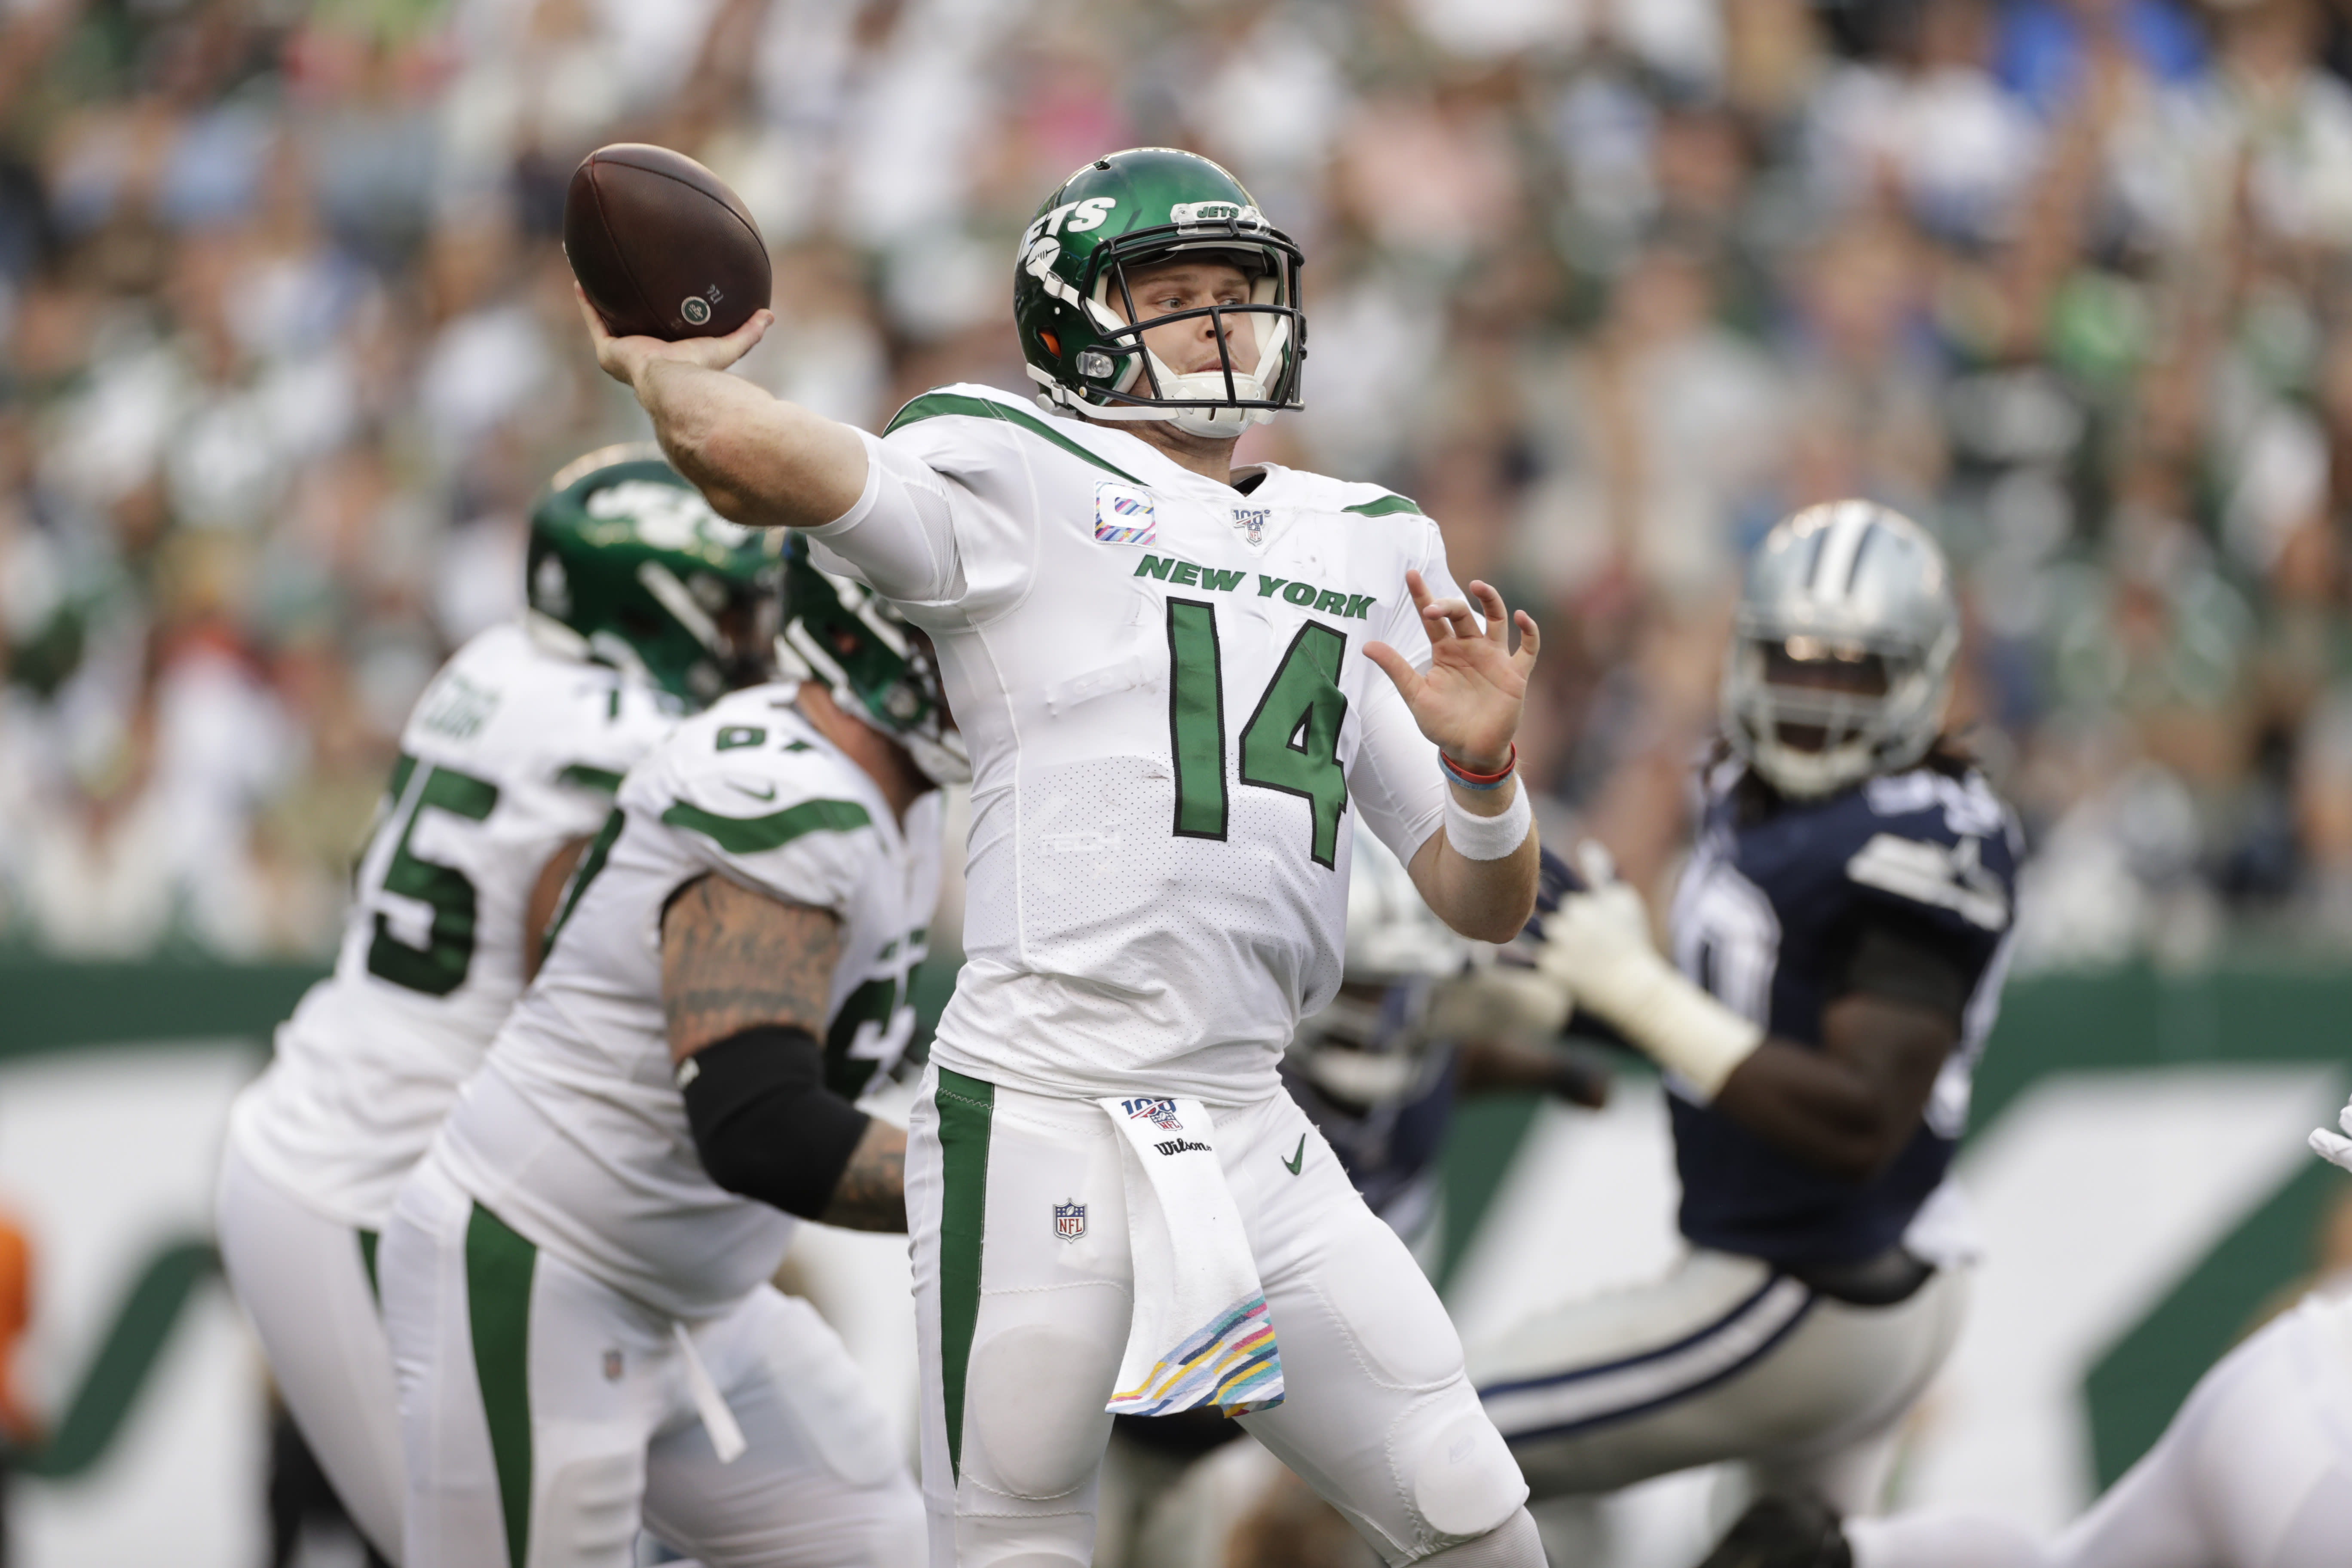 New York Jets quarterback Sam Darnold throws during the first half of an NFL football game against the Dallas Cowboys, Sunday, Oct. 13, 2019, in East Rutherford, N.J. (AP Photo/Adam Hunger)